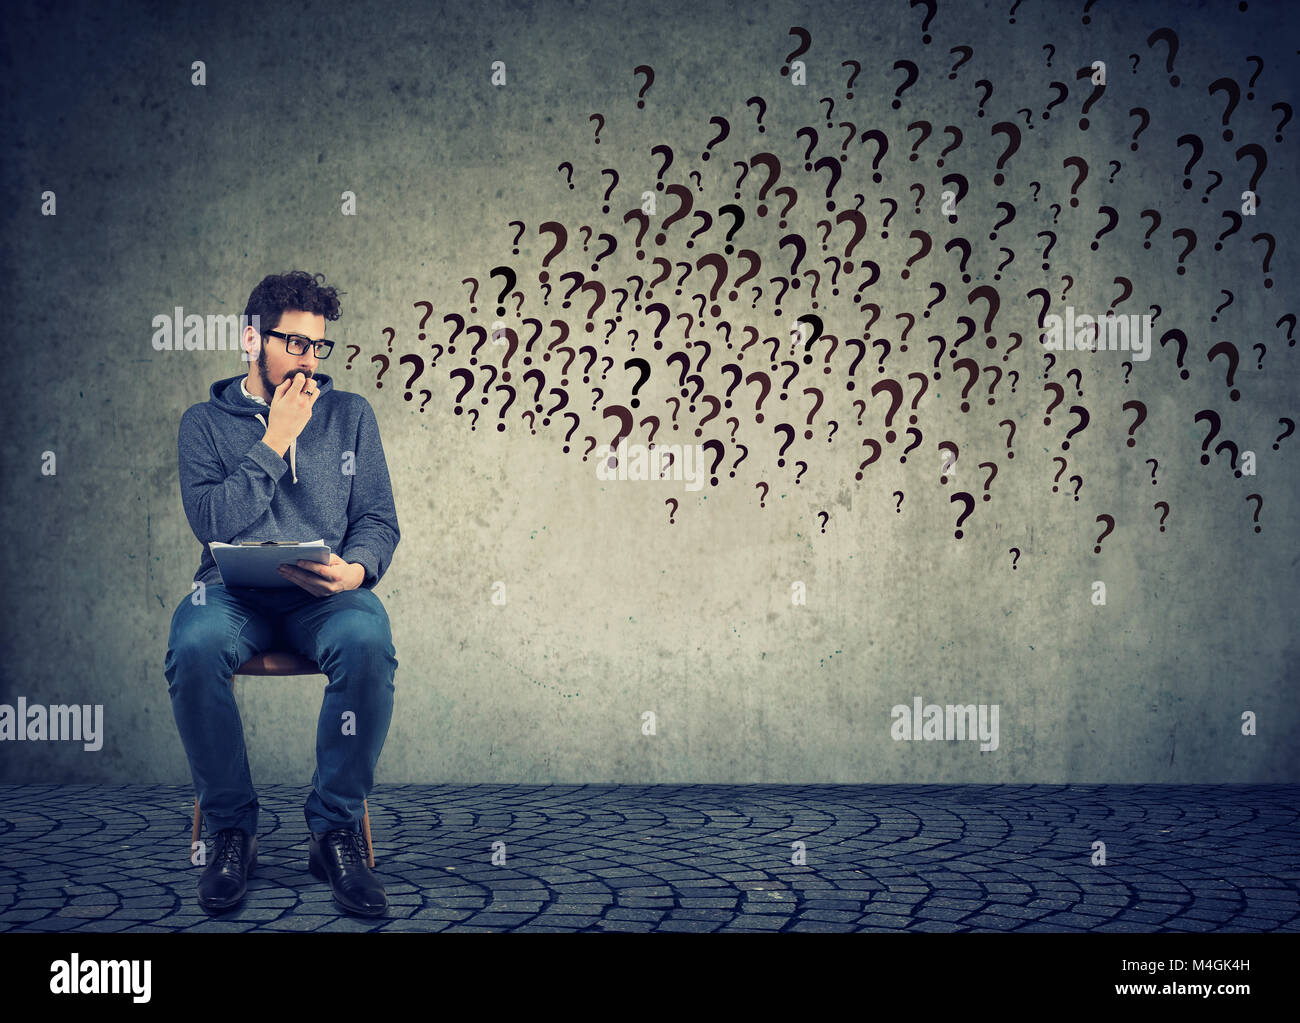 Anxious man sitting with resume anticipating interview, having plenty of questions and looking scared. - Stock Image